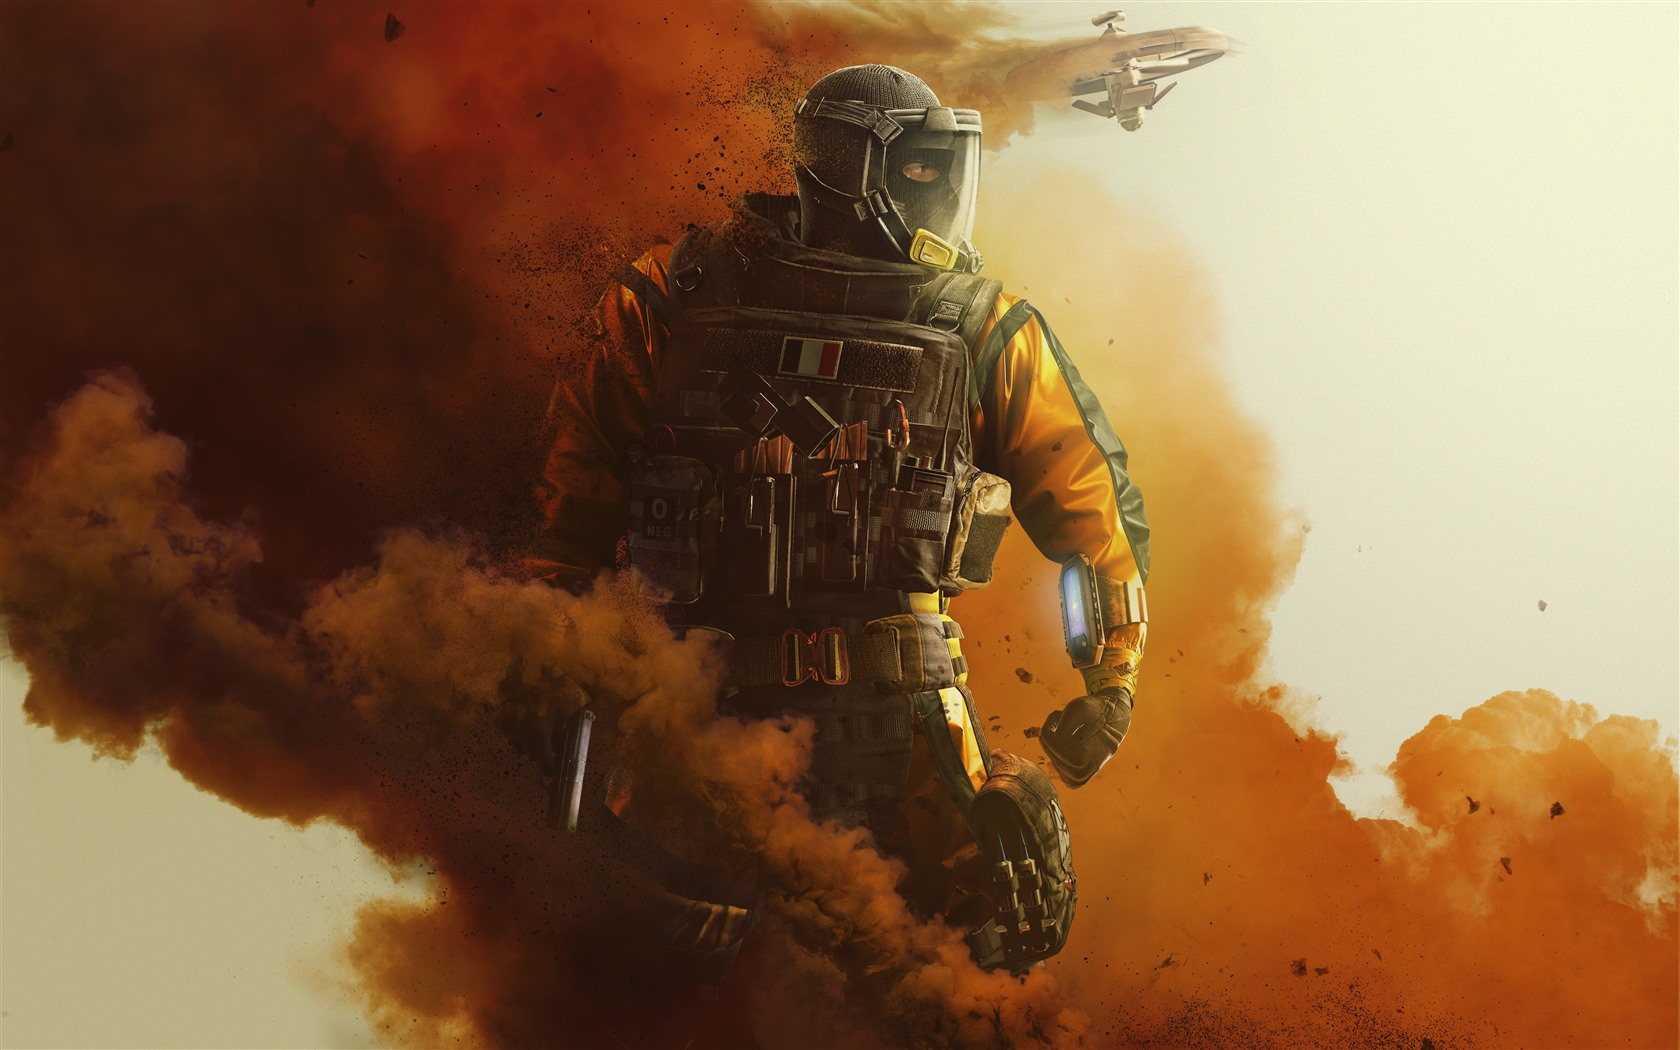 Iphone 6s Plus Wallpaper Hd Wallpaper Rainbow Six Siege Soldier Smoke Fighter